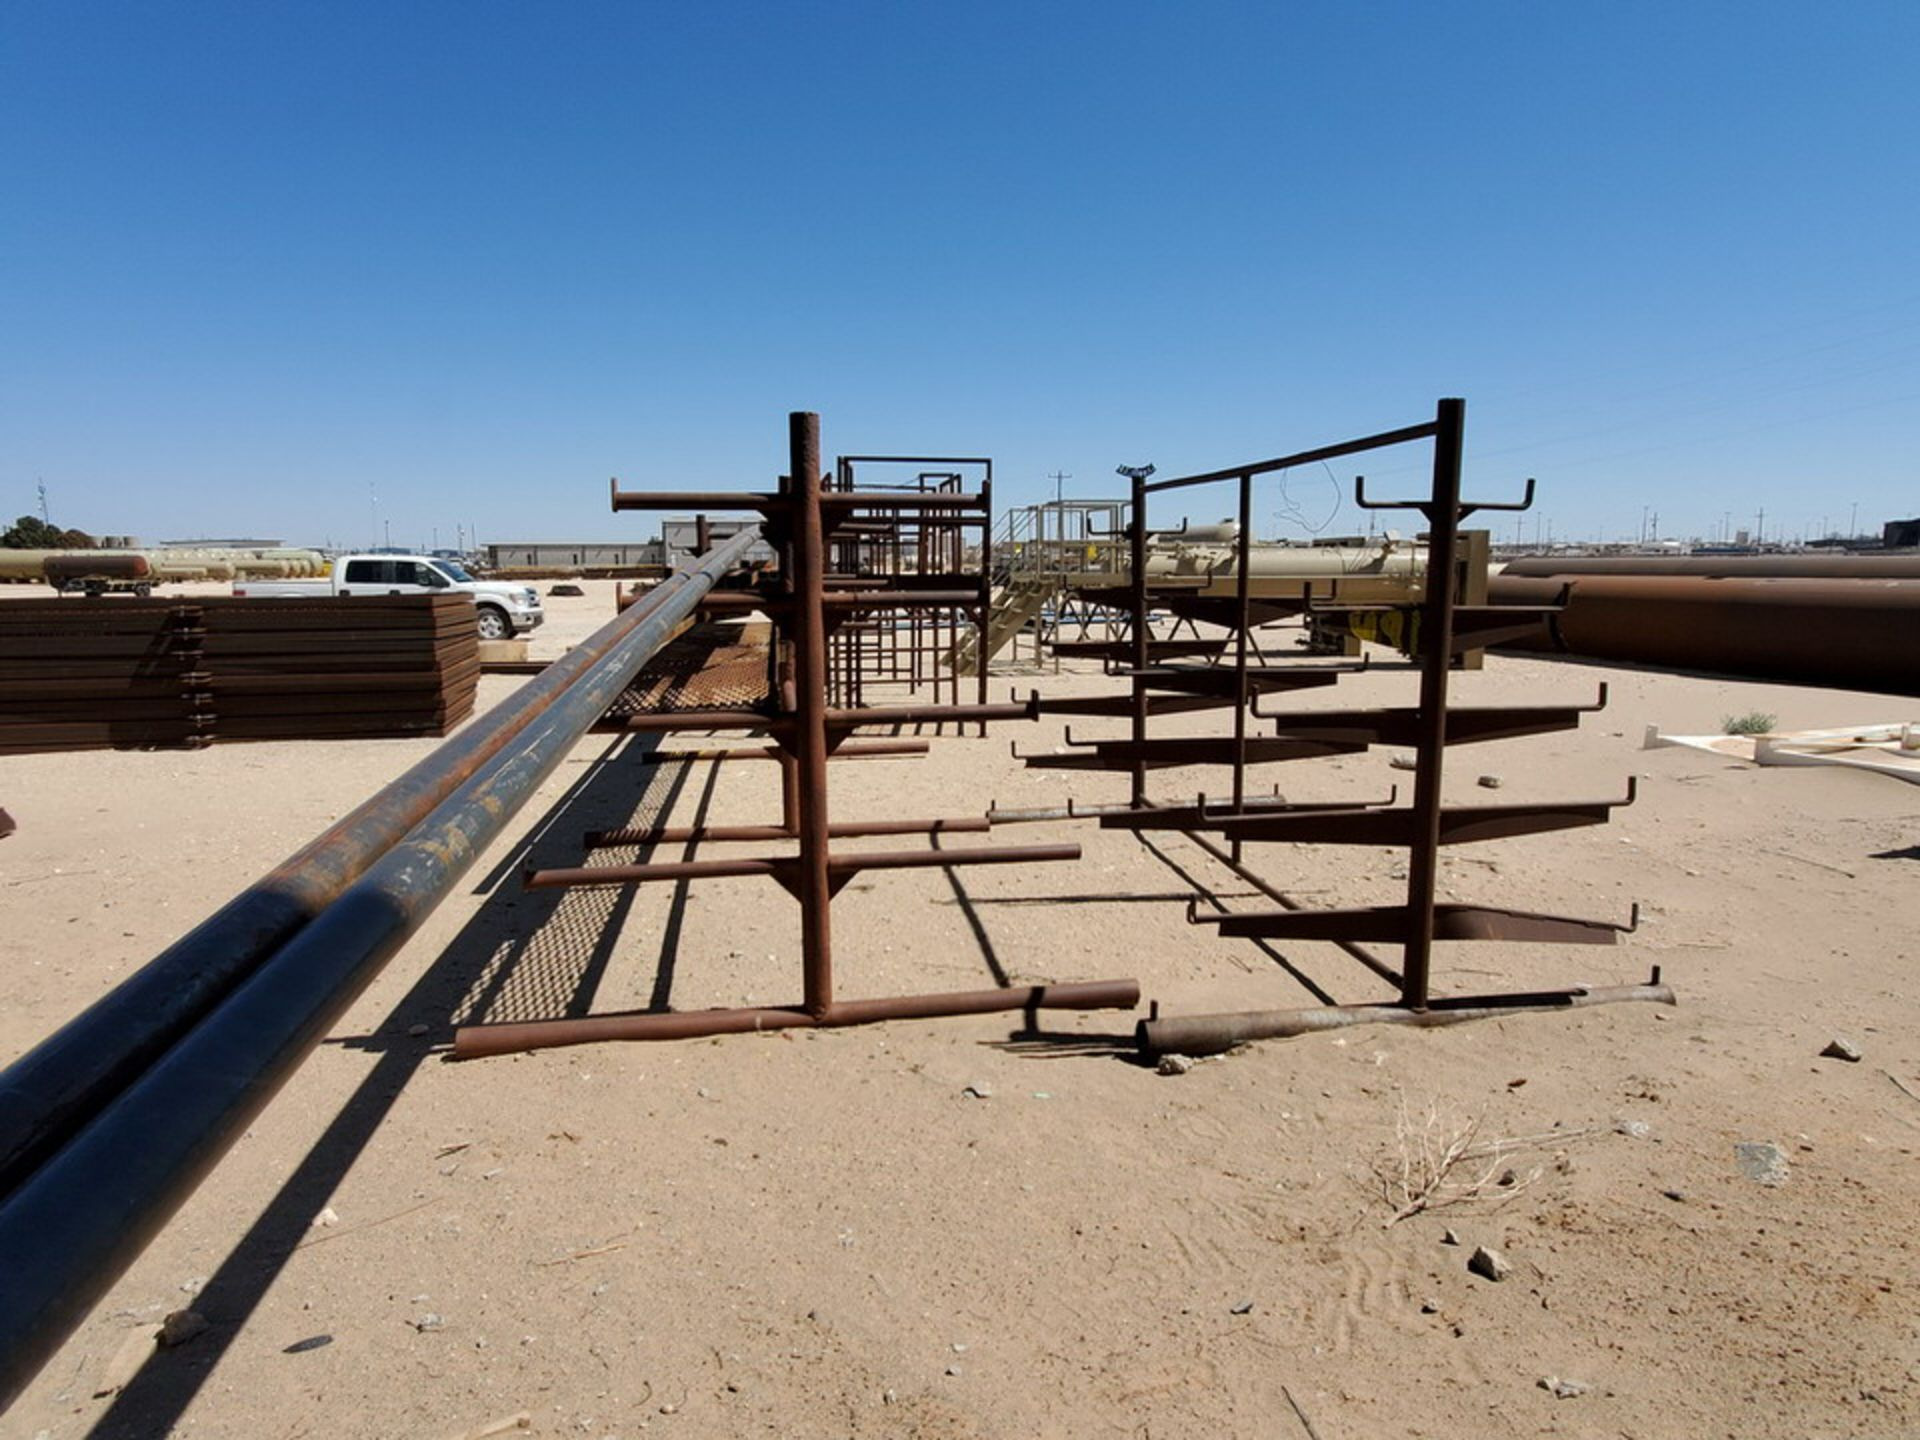 """(3) 3-Post Doublesided Cantilever Racks (2) 10' x 6' x 6'6"""", (1) 17' x 7' x 6'6"""" - Image 14 of 17"""